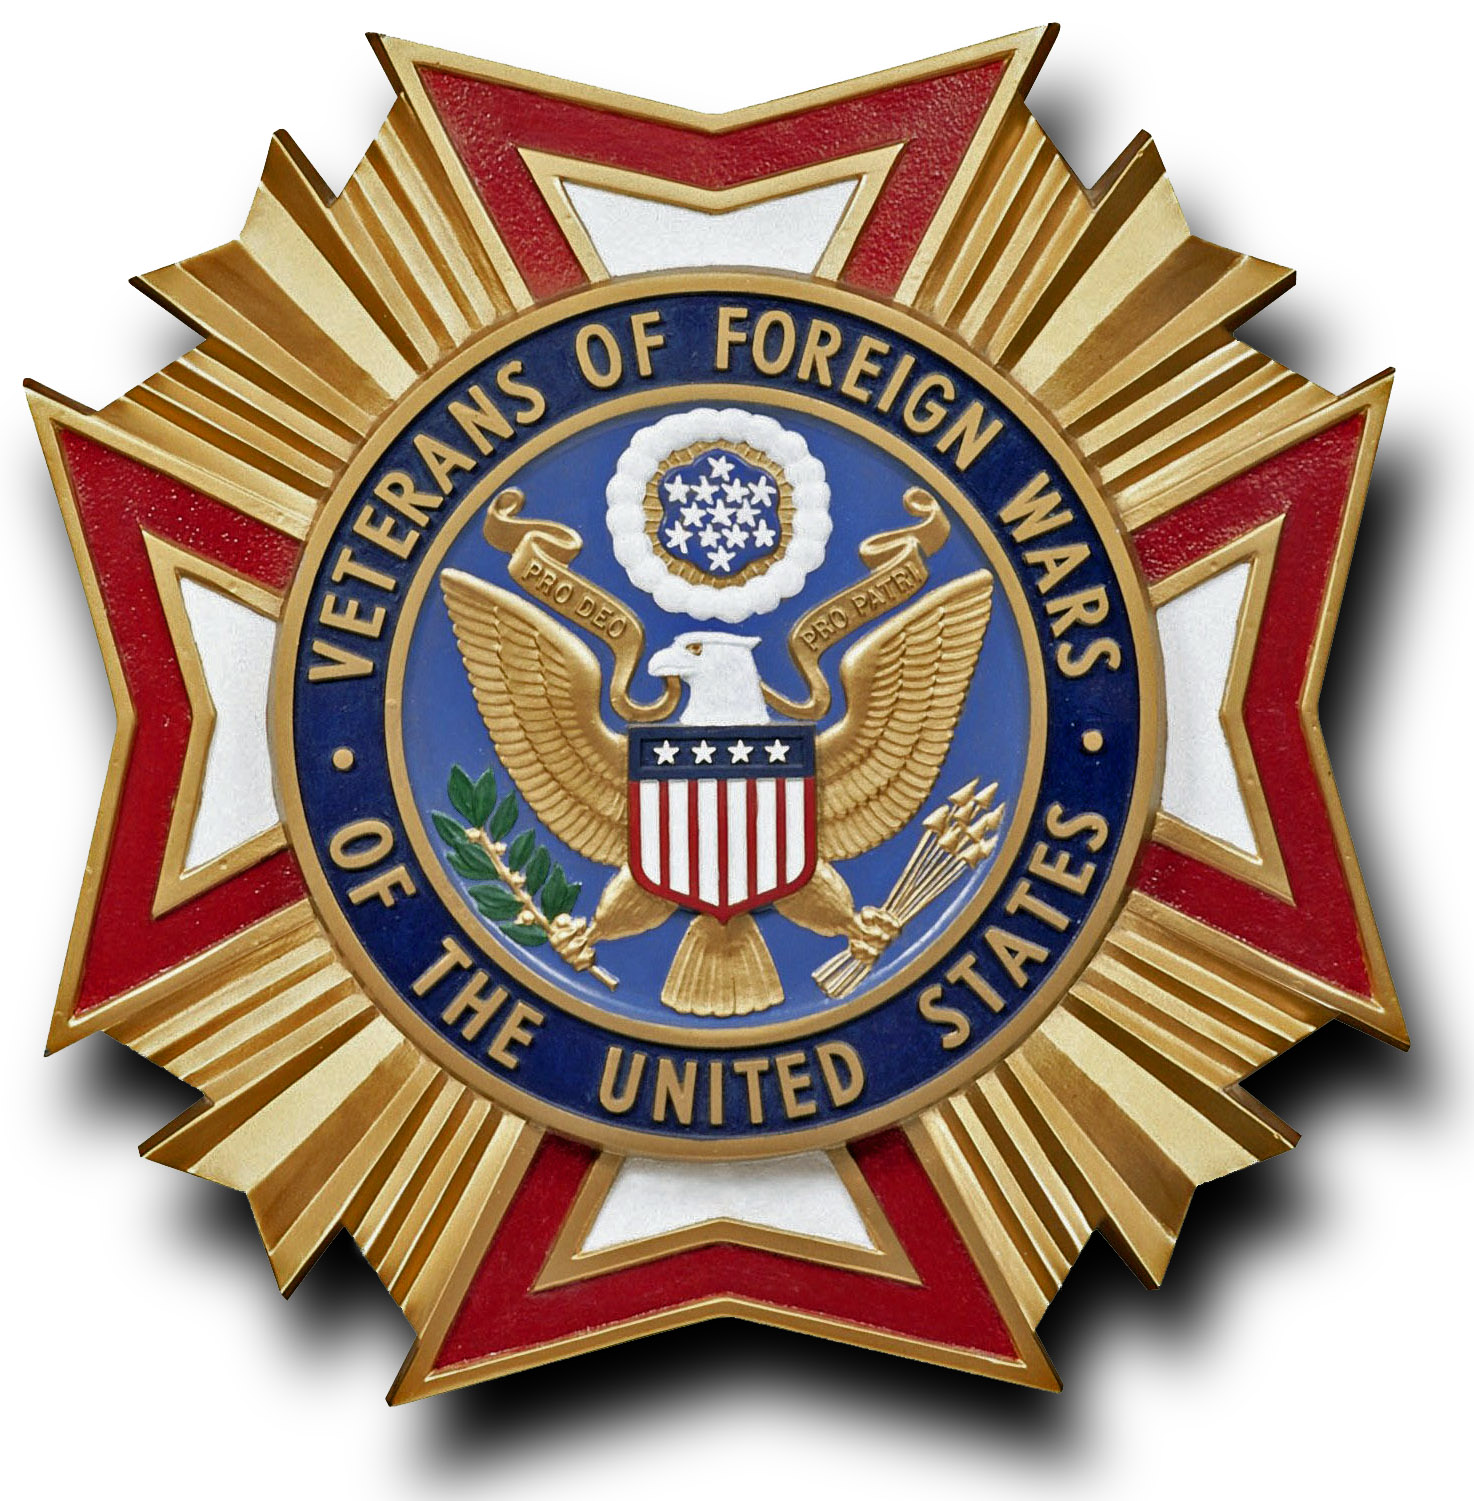 The Veterans of Foreign Wars of the